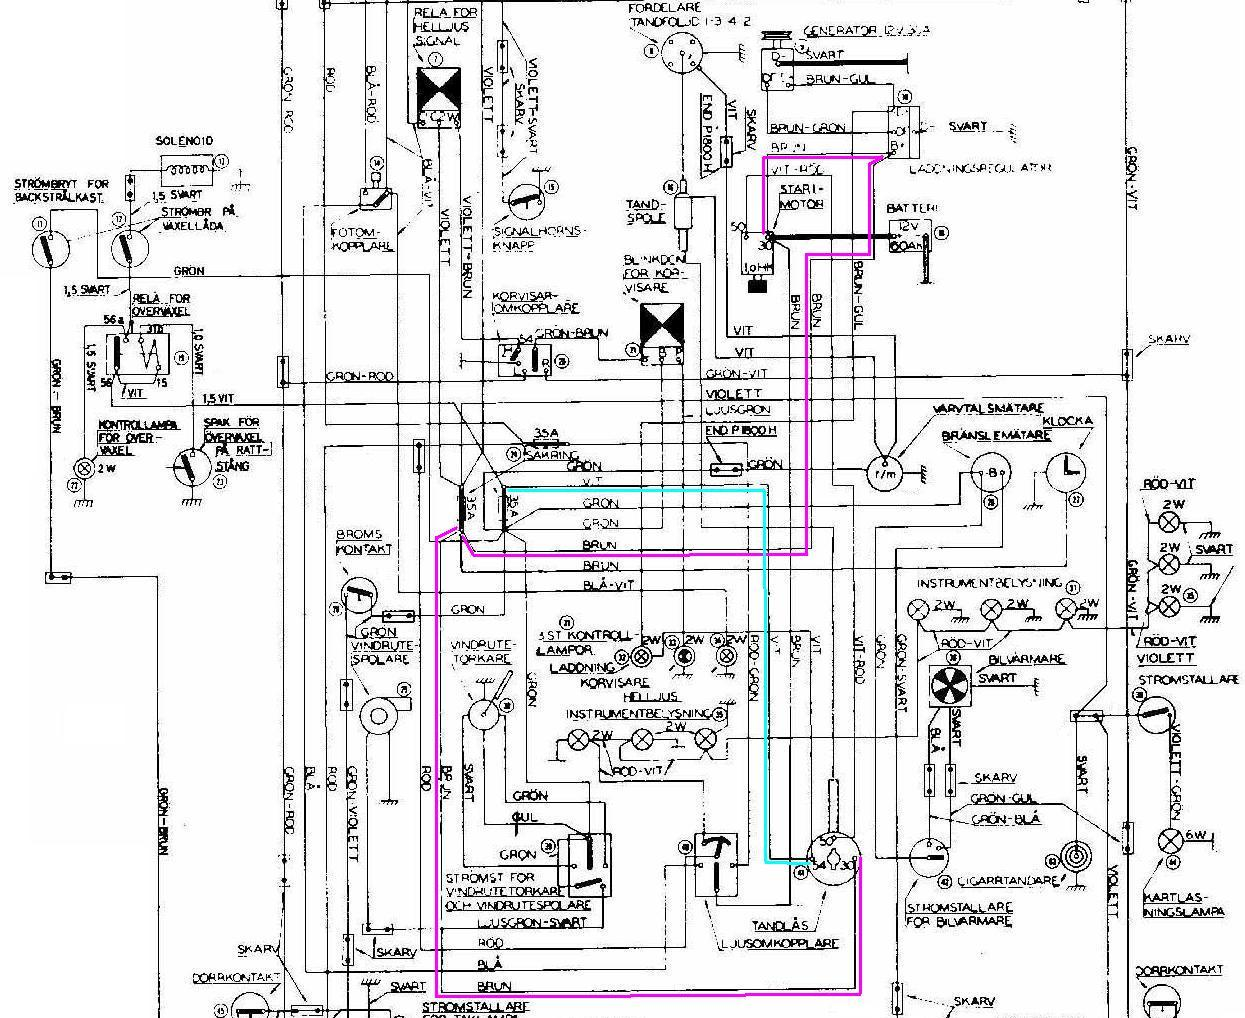 Wiring Diagram Volvo Amazon Opinions About Mercedes Ignition Switch Plug 1975 To 1995 Benz Schematics Diagrams U2022 Rh Parntesis Co 1991 Vw Cabriolet